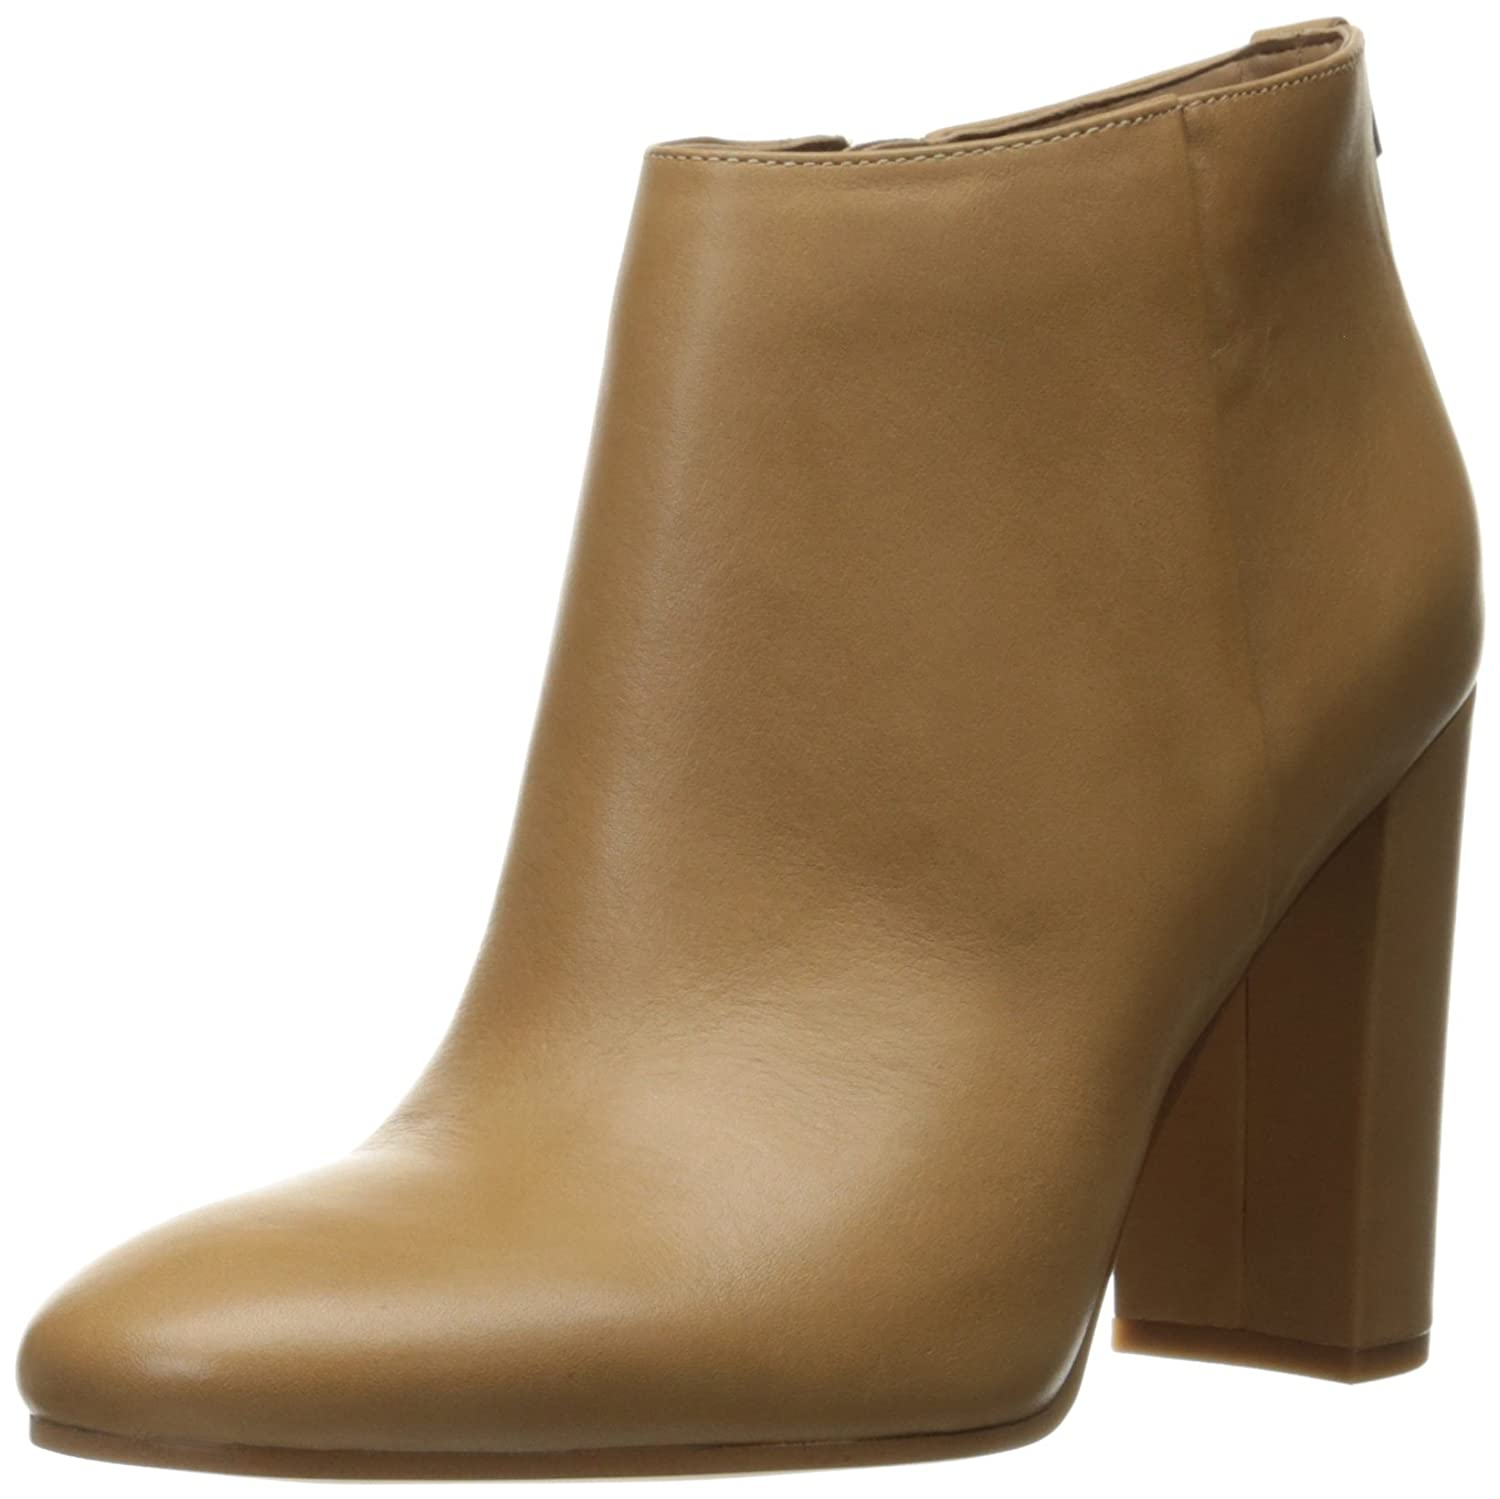 Sam Edelman Women's Cambell Ankle Bootie B01EWNPG2M 7.5 B(M) US|Golden Caramel Leather